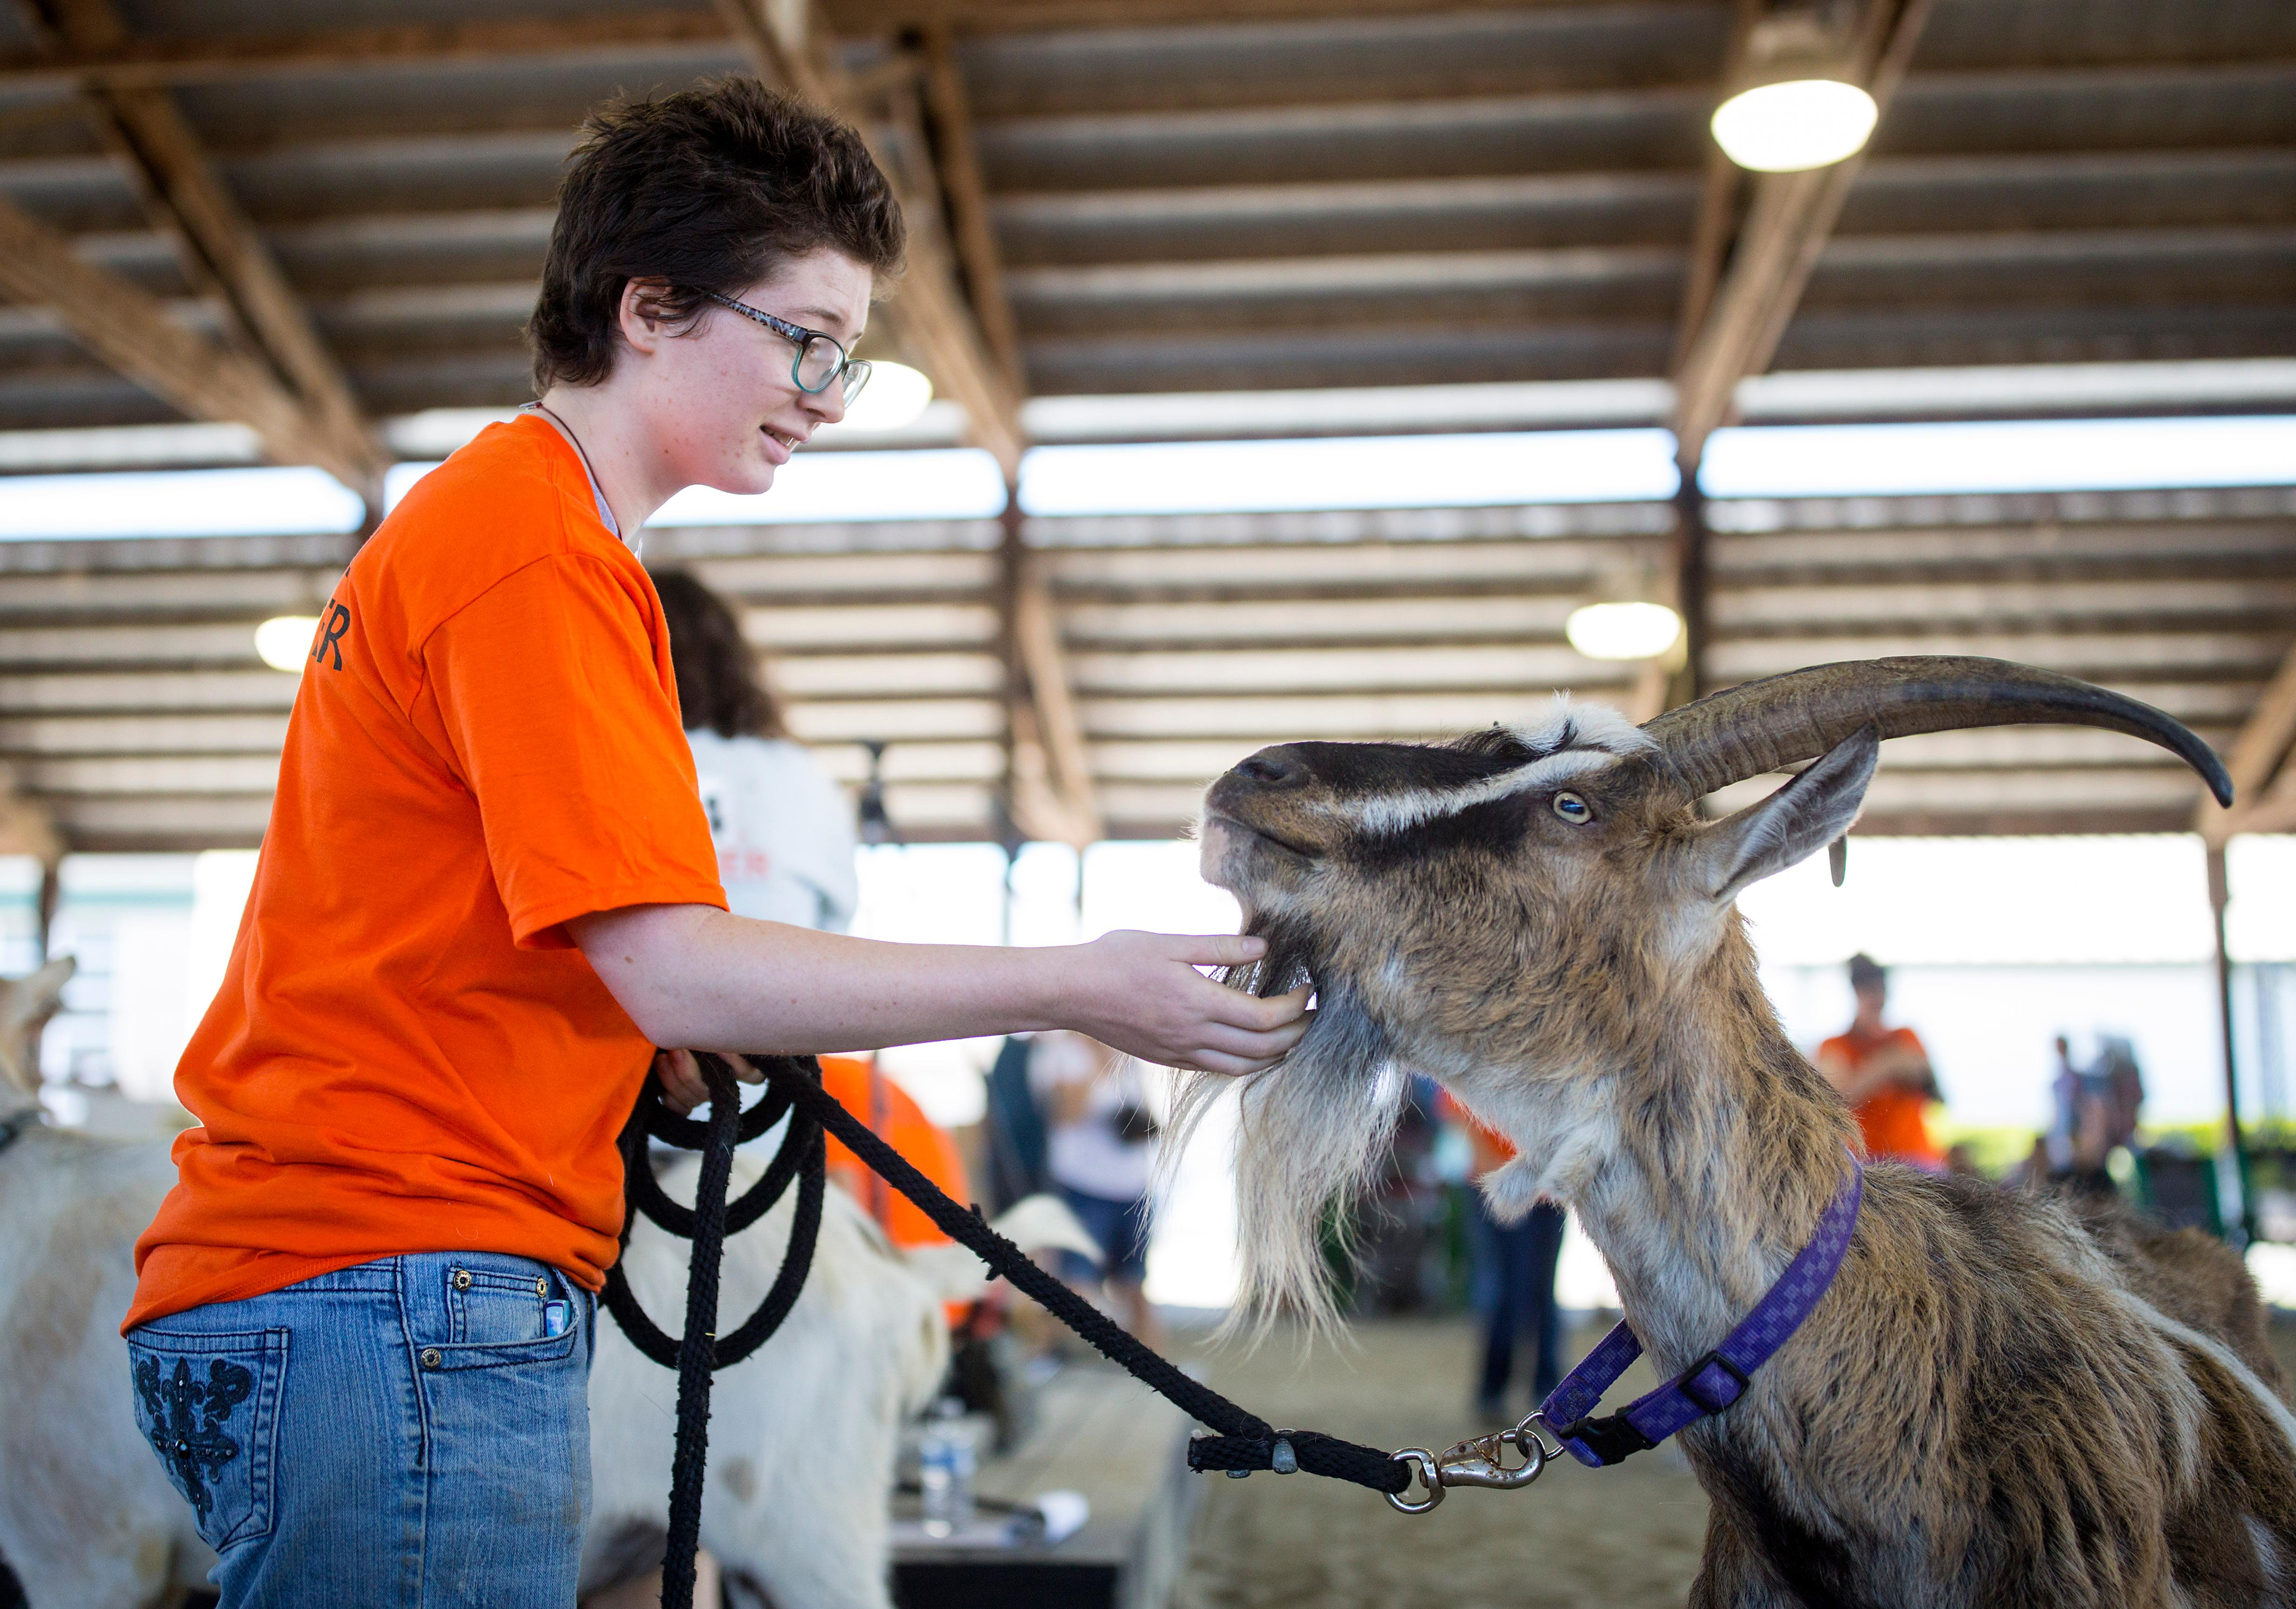 The annual Goat Olympics came to the Evergreen State Fairgrounds on Saturday in support of the New Moon Farm Goat Rescue and Sanctuary. Goats and their owners competed in events such as foot races, the shortest goat, the longest ears, and the best goat-owner-look-a-like. All proceeds from the event go to support New Moon Farm. (Sy Bean / Seattle Refined)